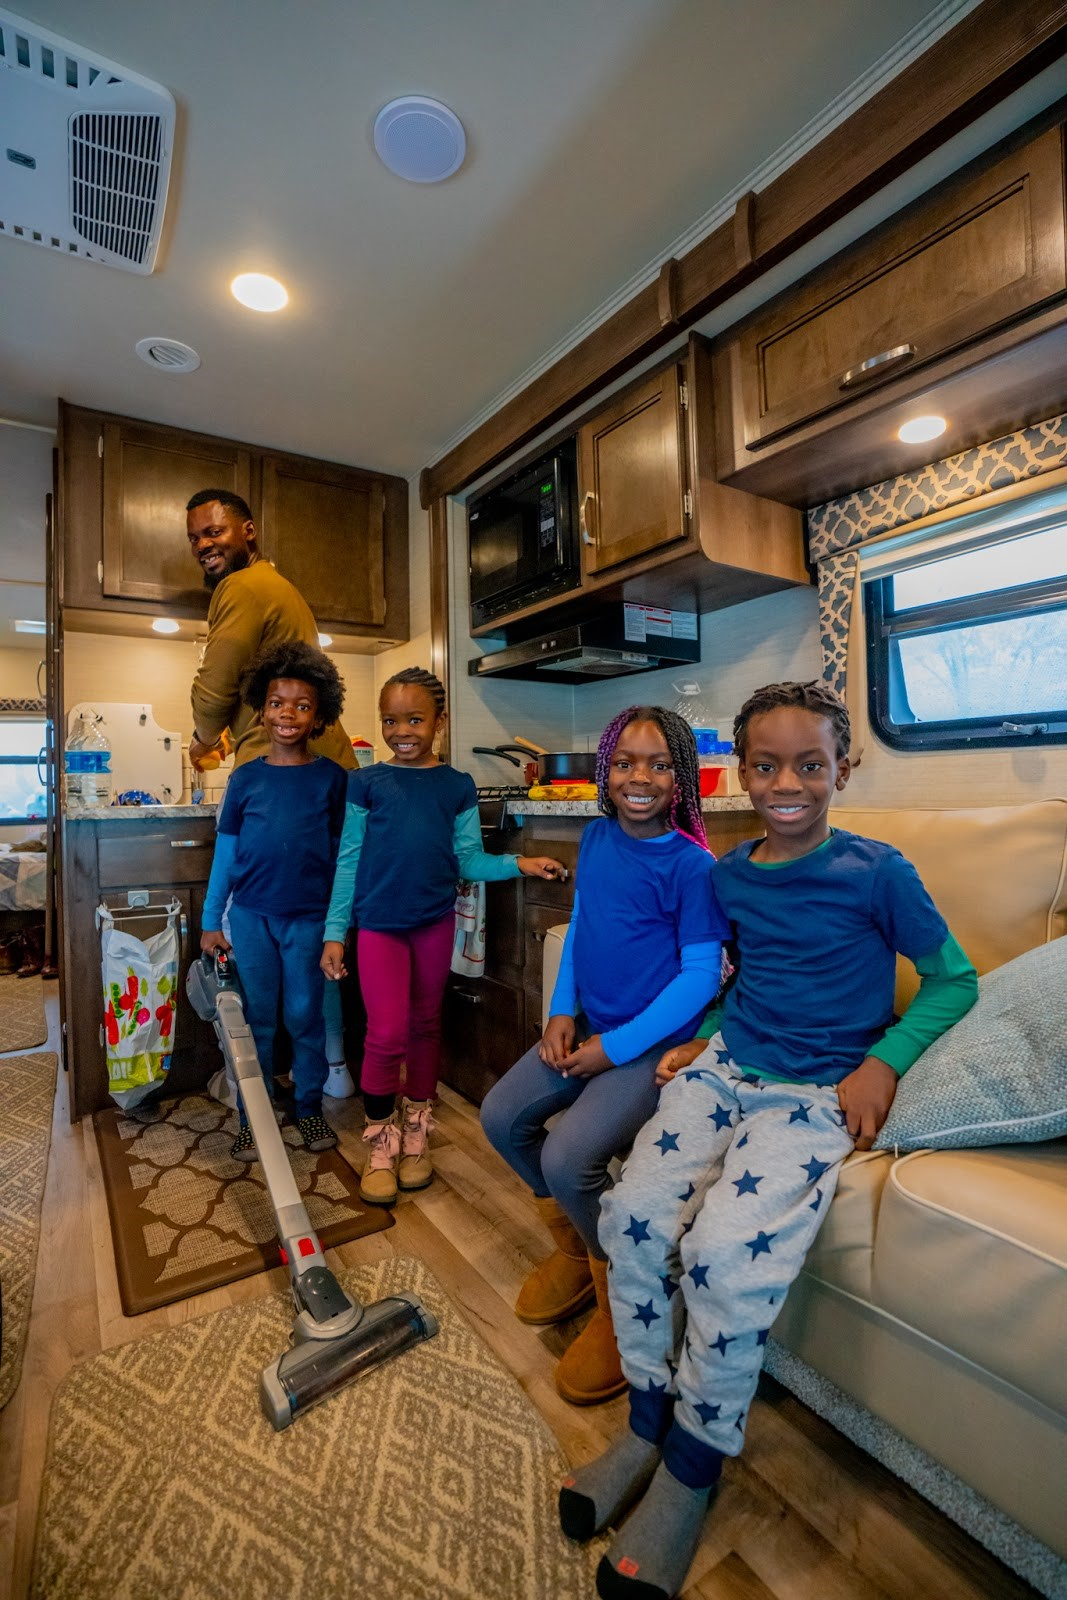 10 Life Skills Your Kids Can Learn Through RVing 22